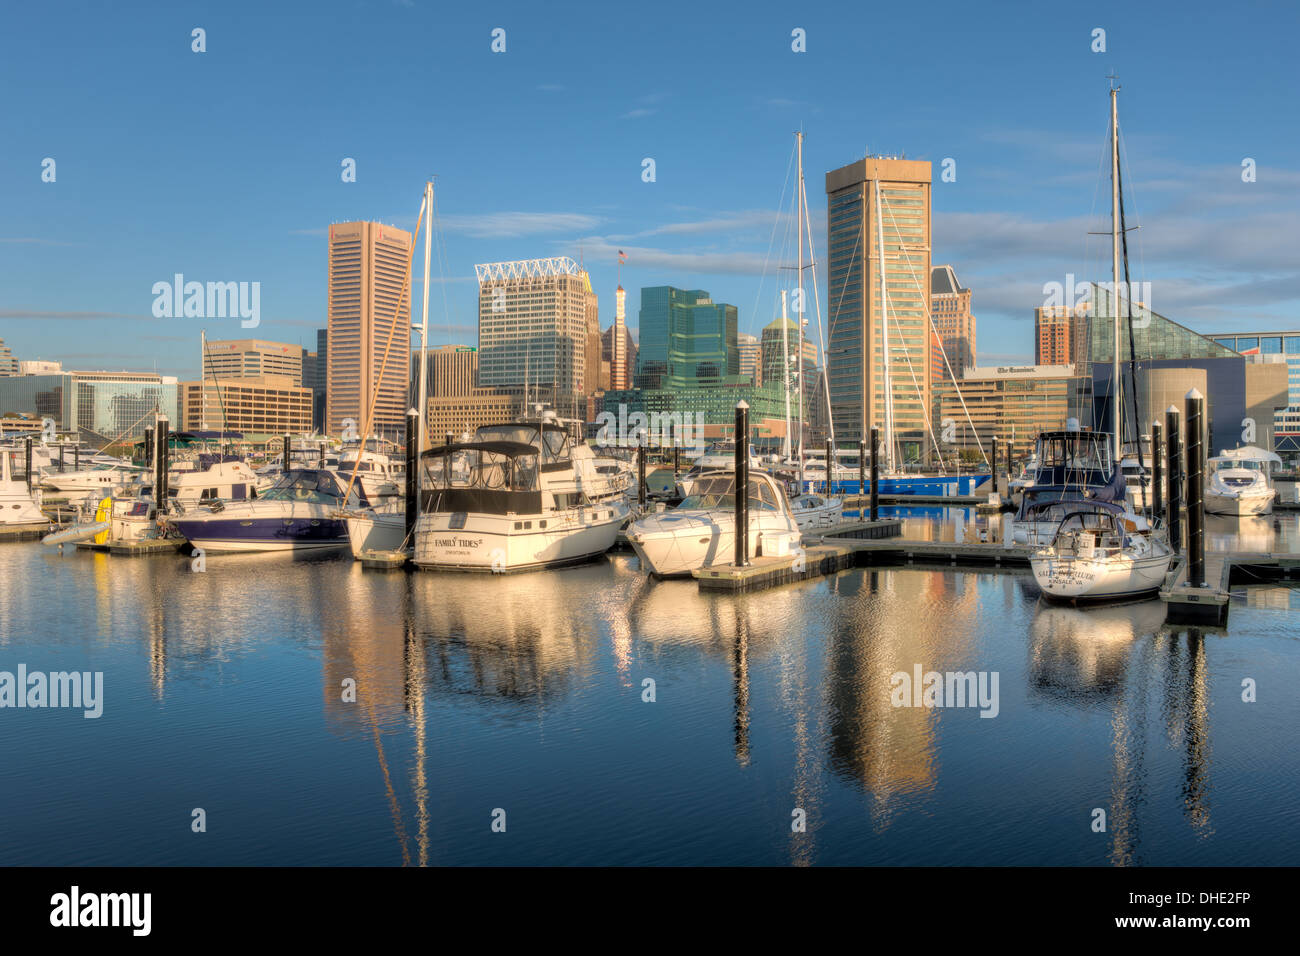 Baltimore skyline, including the Transamerica Tower and World Trade Center, reflected in the waters of the Inner Harbor. - Stock Image